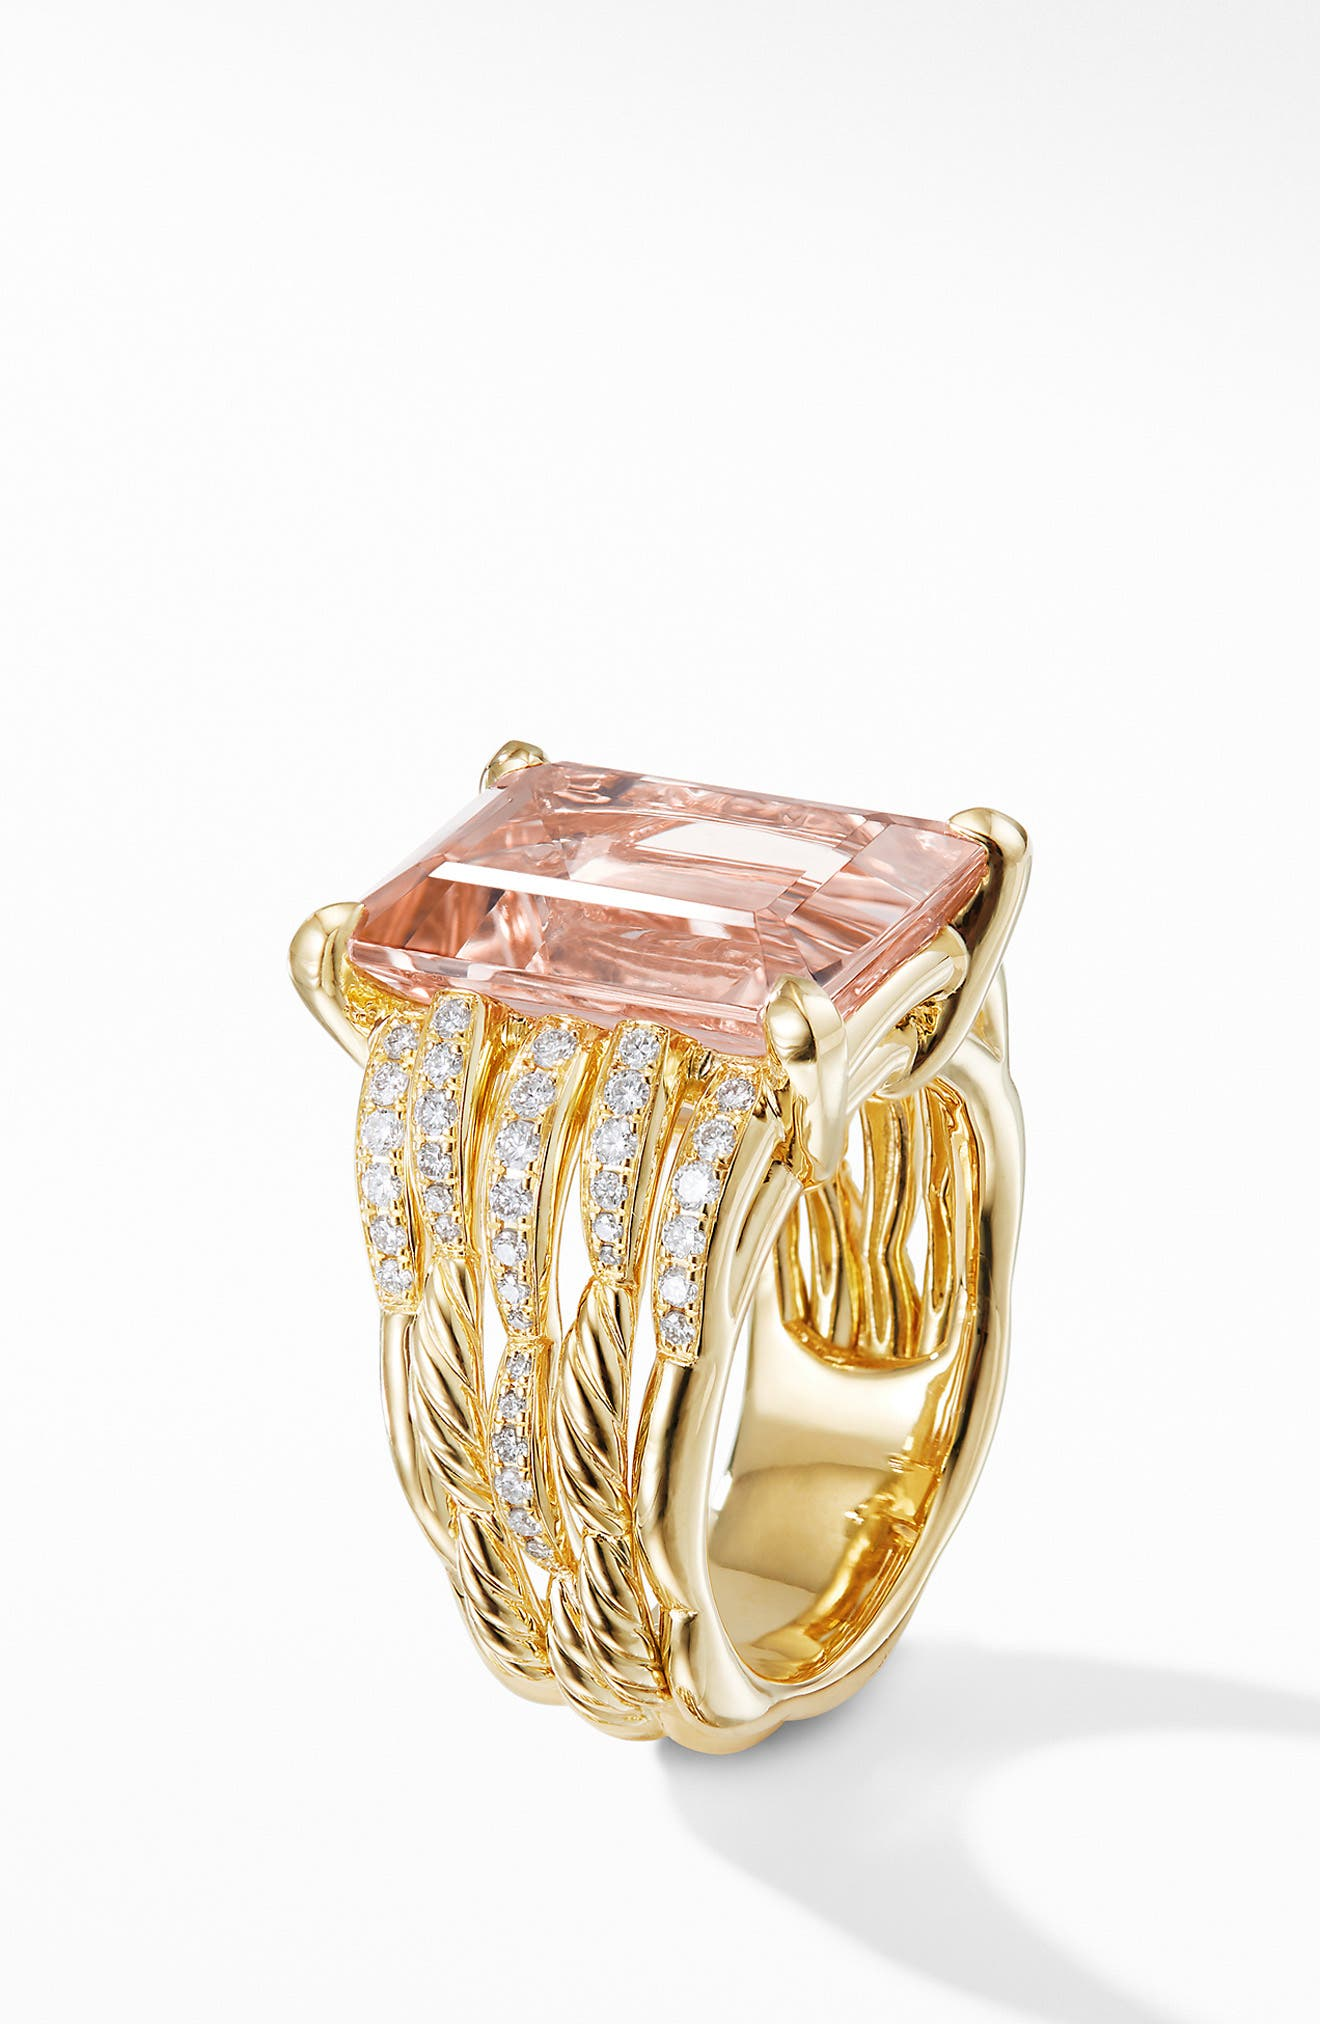 Tides Woven Ring in 18K Yellow Gold with Diamonds,                             Alternate thumbnail 2, color,                             650